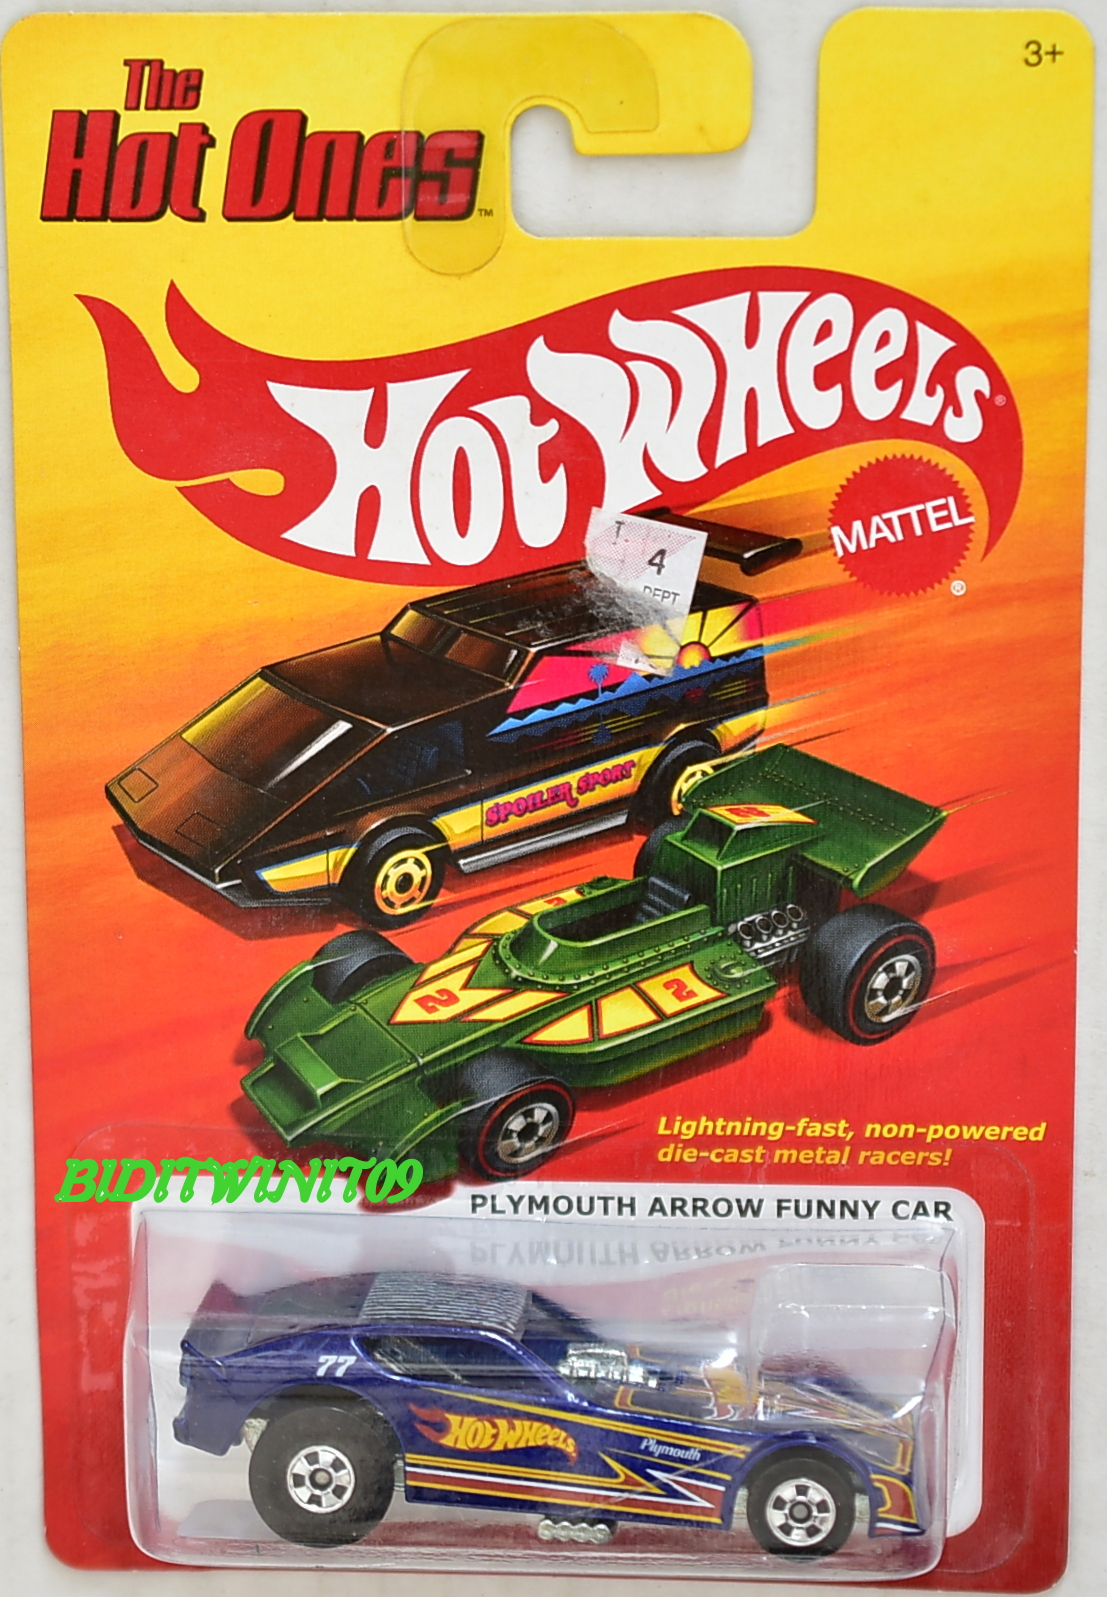 HOT WHEELS 2011 THE HOT ONES PLYMOUTH ARROW FUNNY CAR BLUE